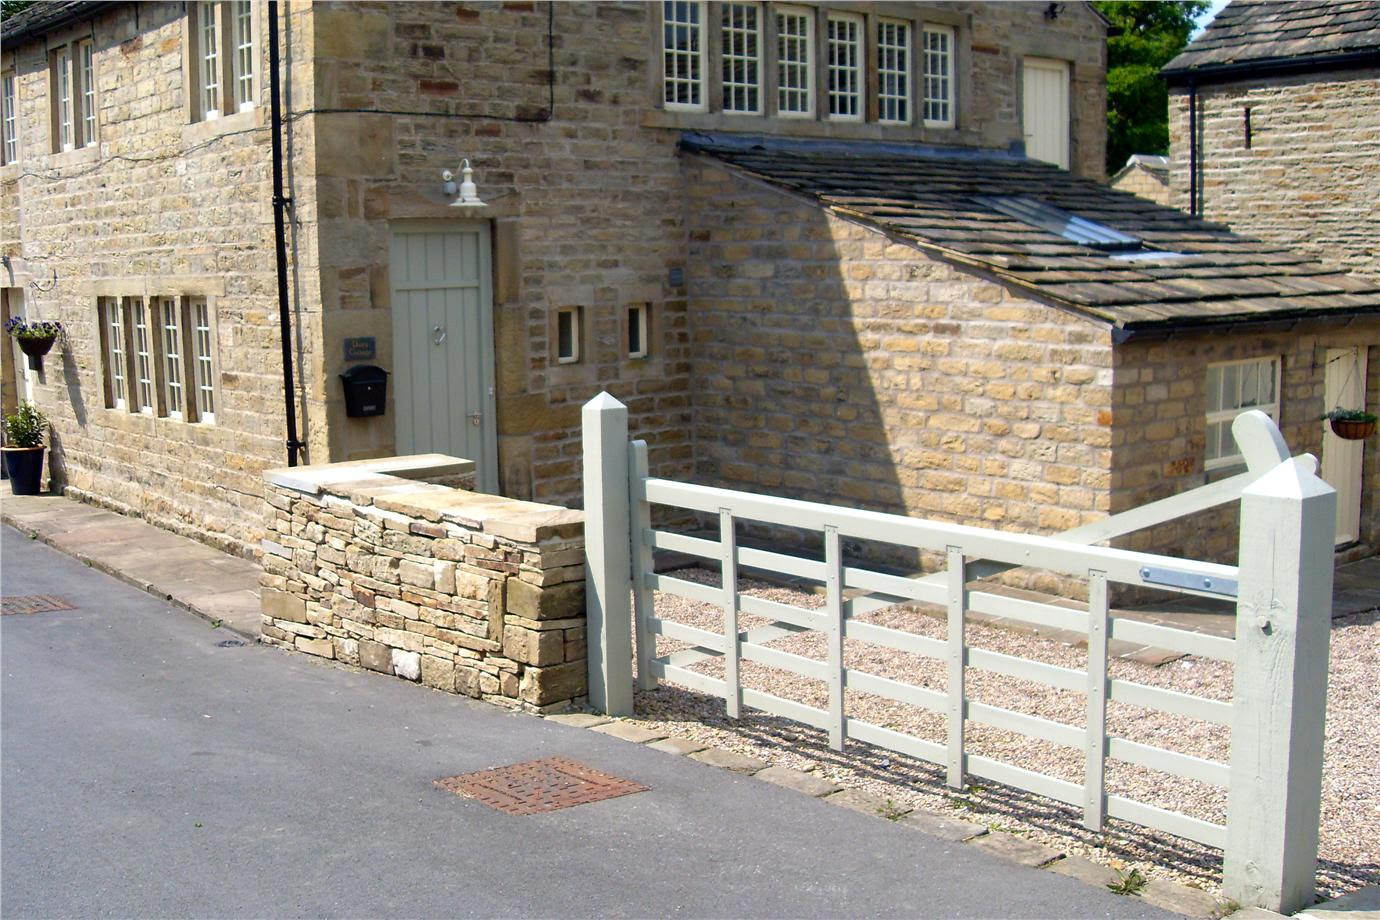 The Top Ten Front Door Paint Colours For Cotswold Stone Houses Farrow and Ball French Gray